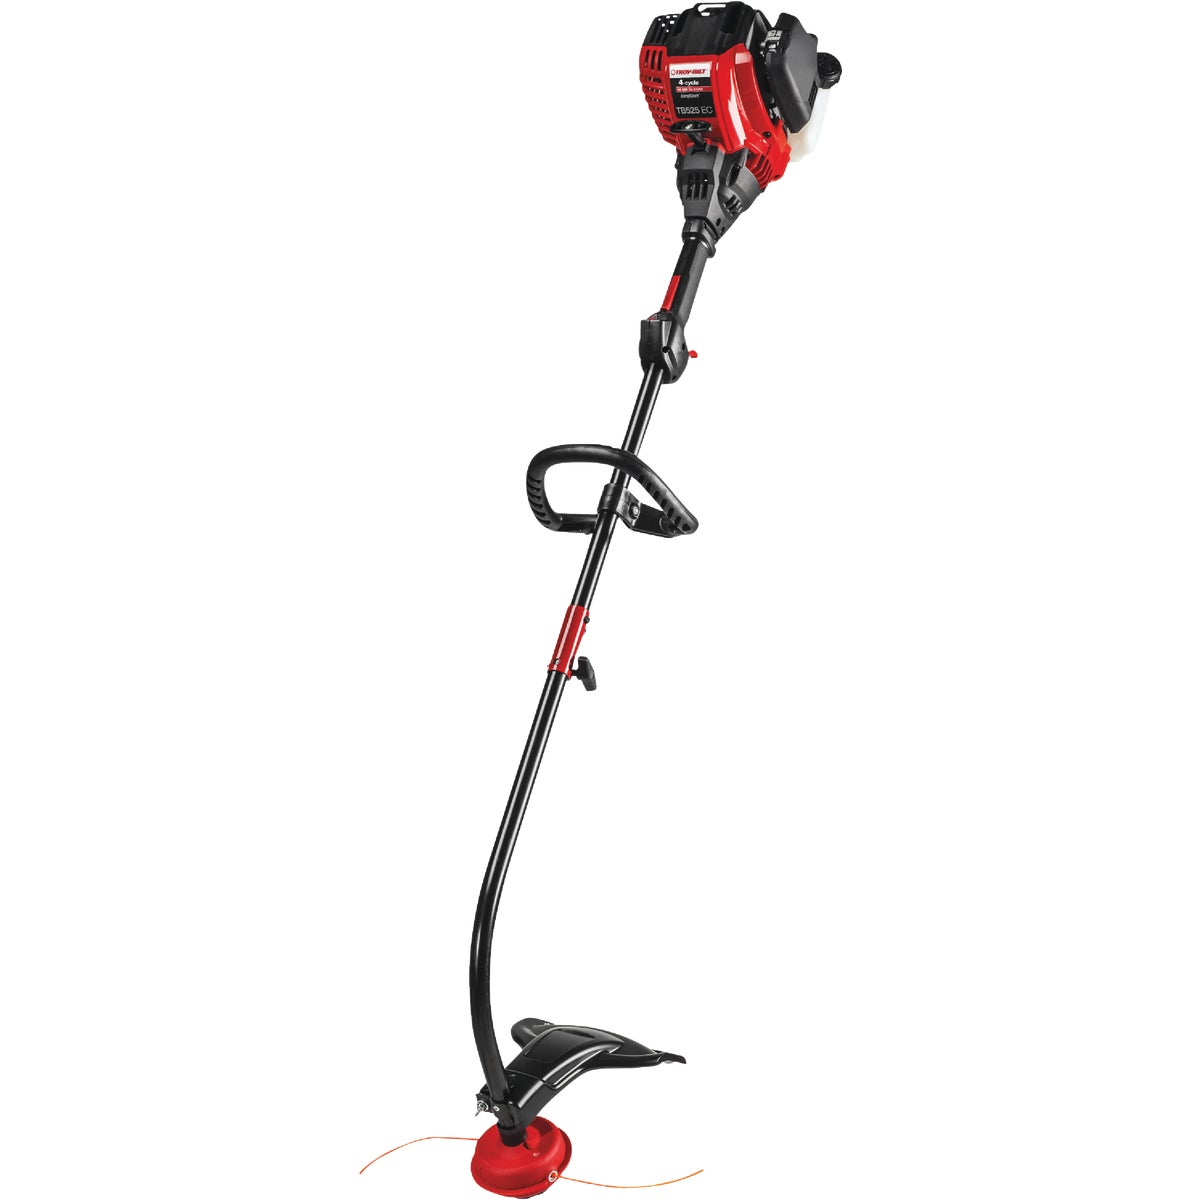 Troy-Bilt 17-Inch 29cc 4-Cycle Curved Shaft Trimmer with